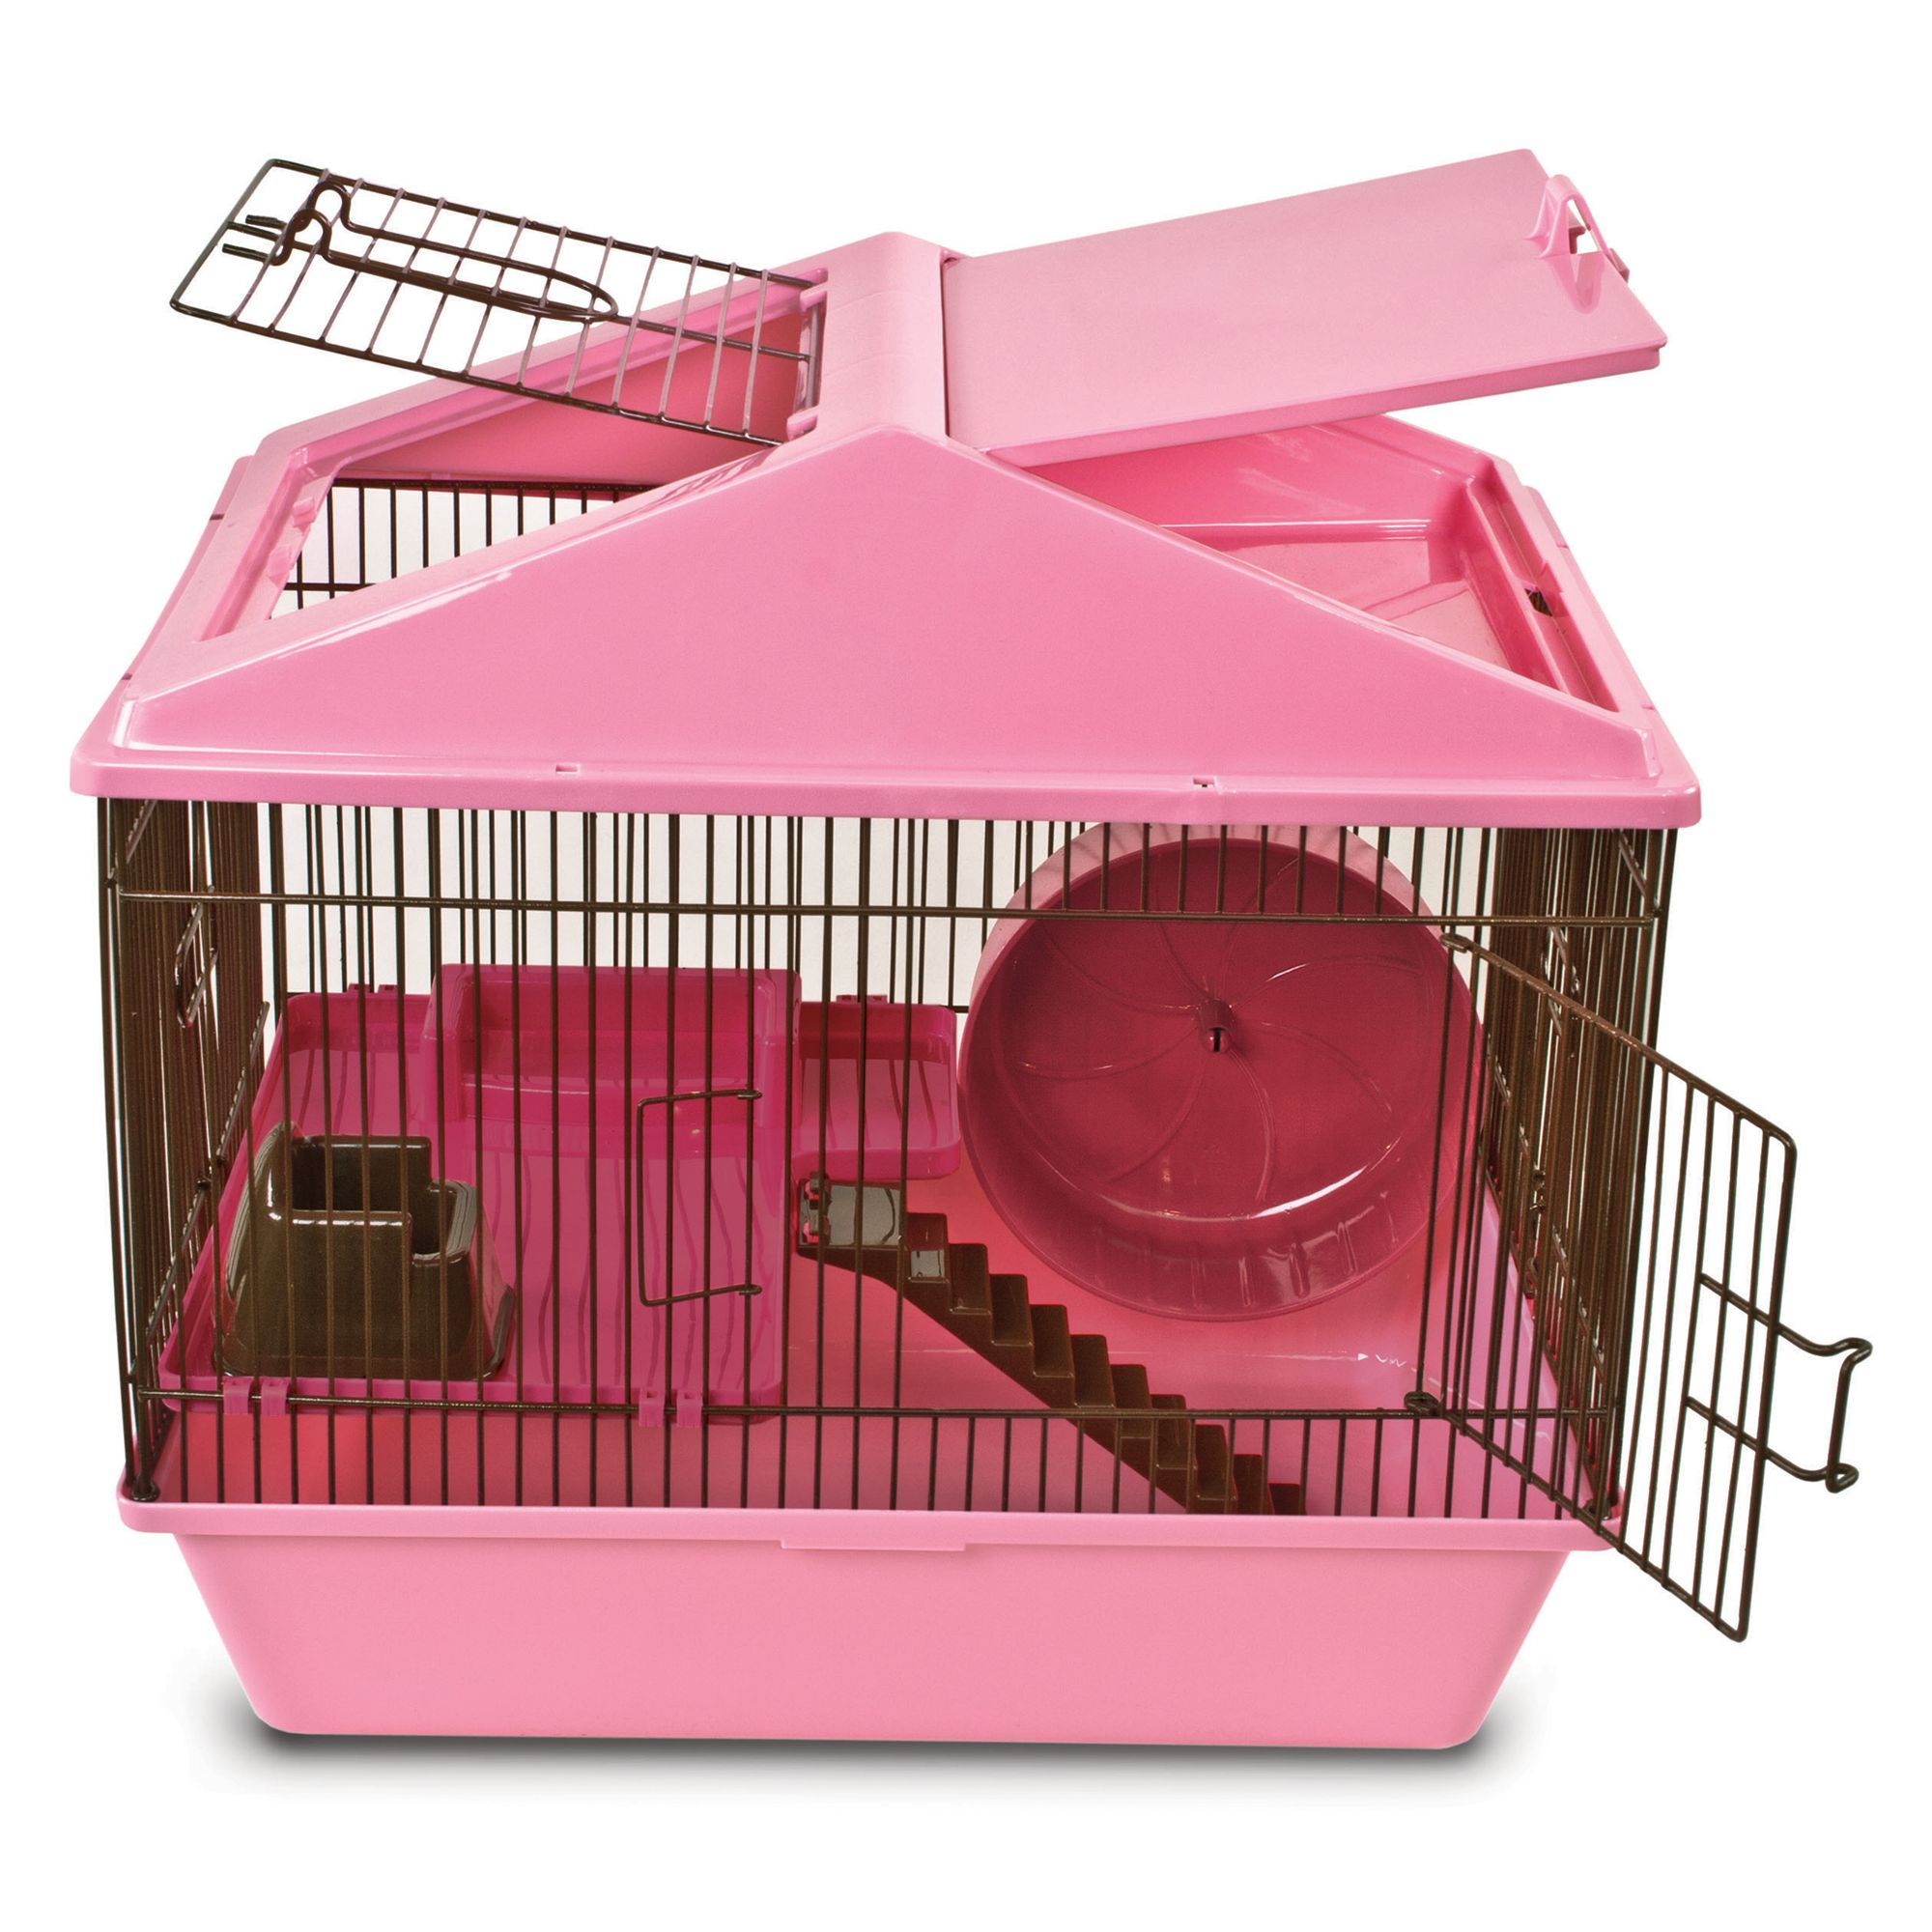 Critter Ware Animal House 2 Level Hamster Cage